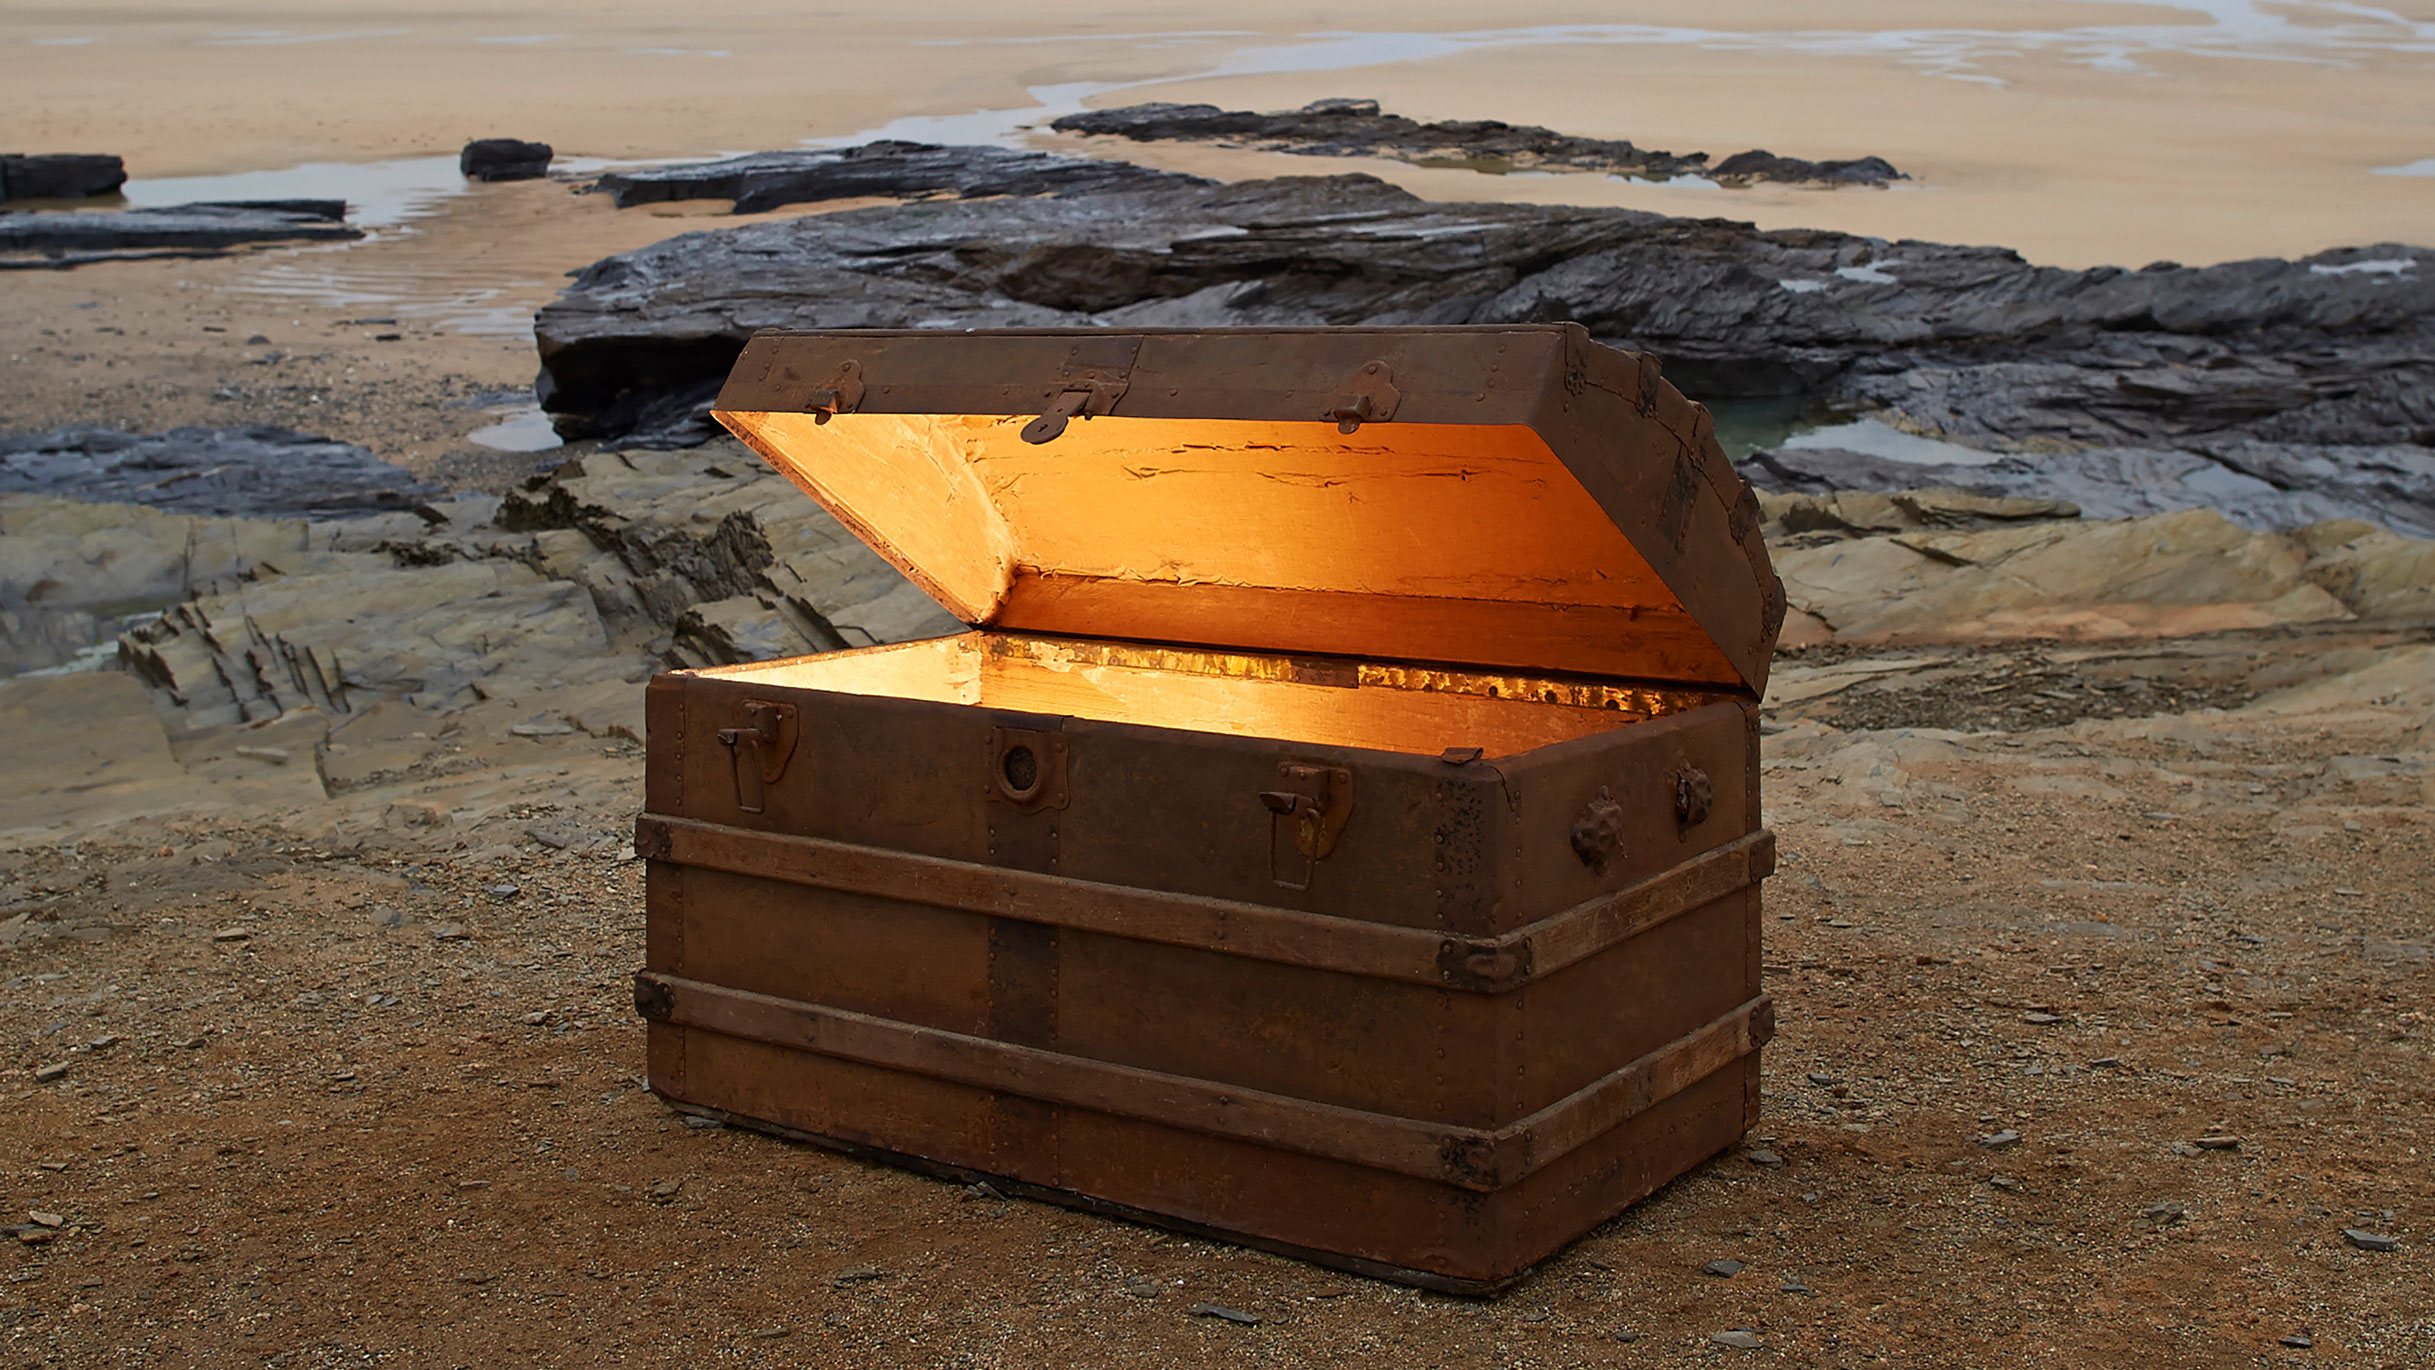 Open treasure chest of gold on a deserted beach.